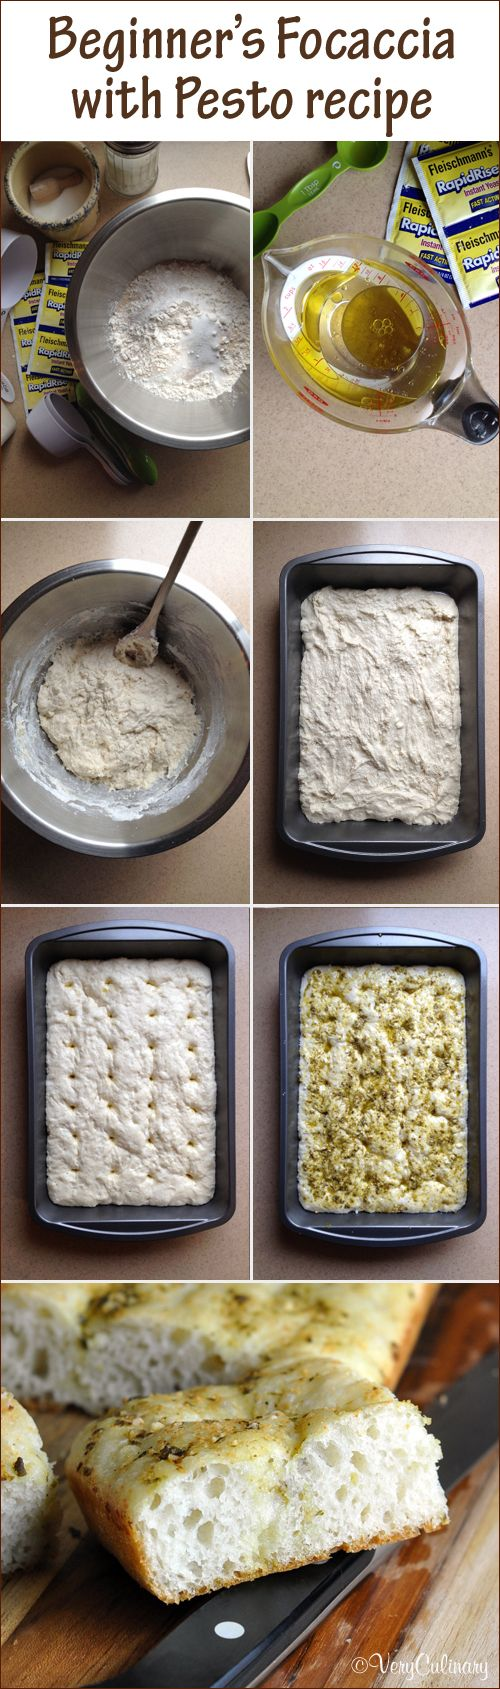 Beginner's Focaccia with Pesto recipe - easy enough for the novice bread baker!